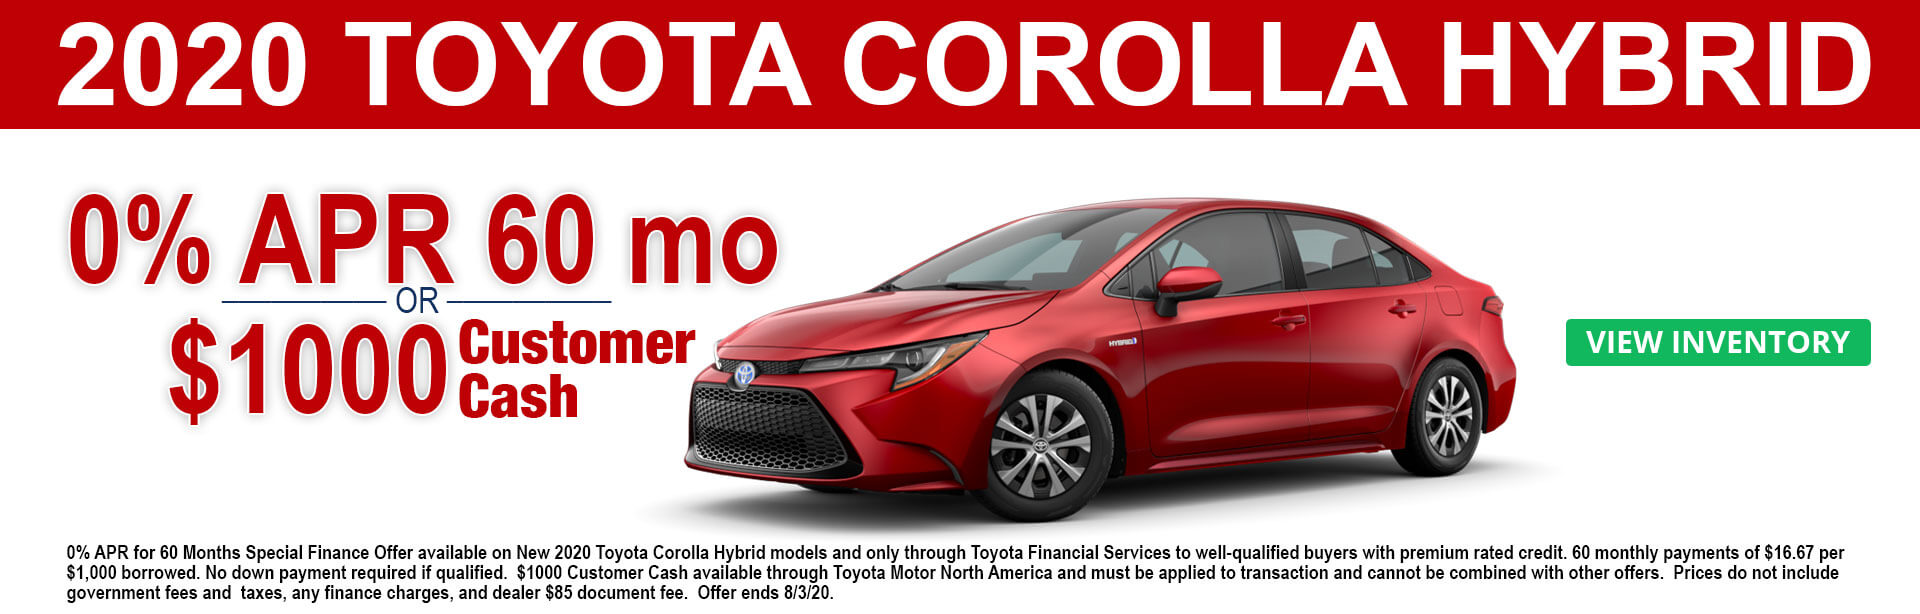 2020 Toyota Corolla Hybrid Cash and APR offers